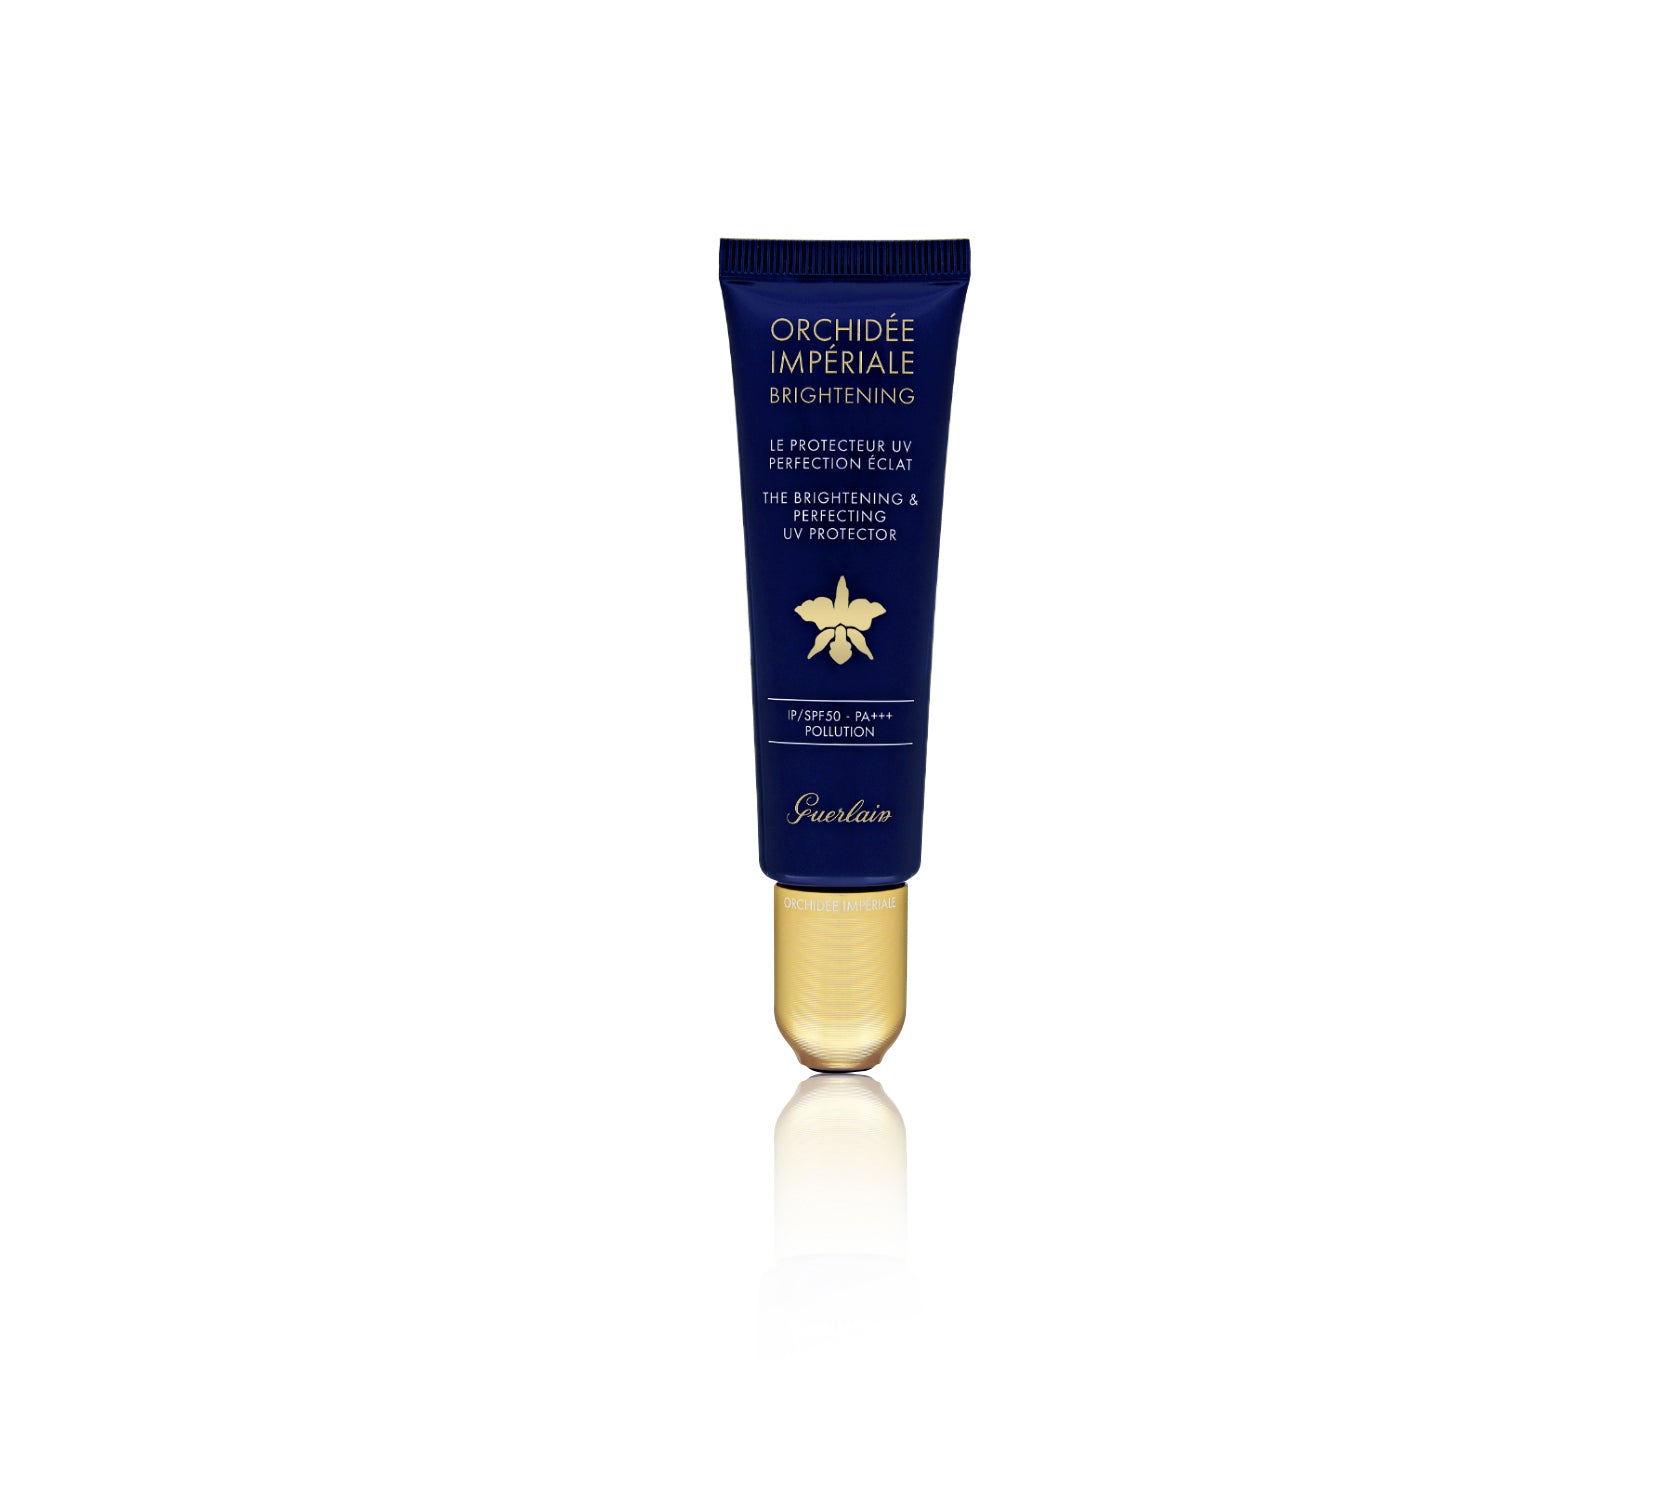 orchidee-imperiale-brightening-the-brightening-perfecting-uv-protector-spf50-pa-pollution-universal-shade